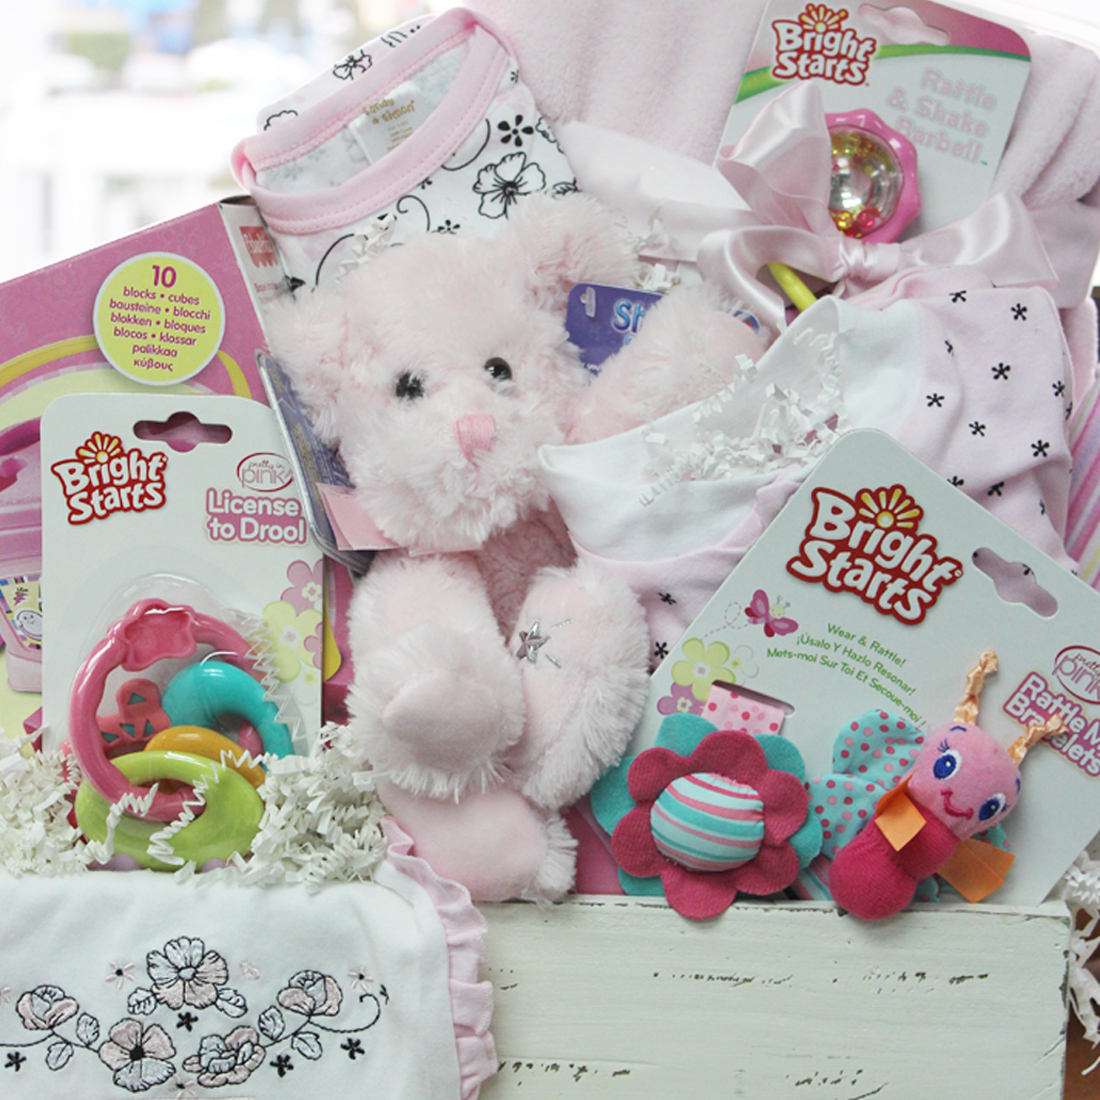 Baby Gift Baskets Vancouver Canada : Sugar spice and everything nice vancouvergiftbaskets